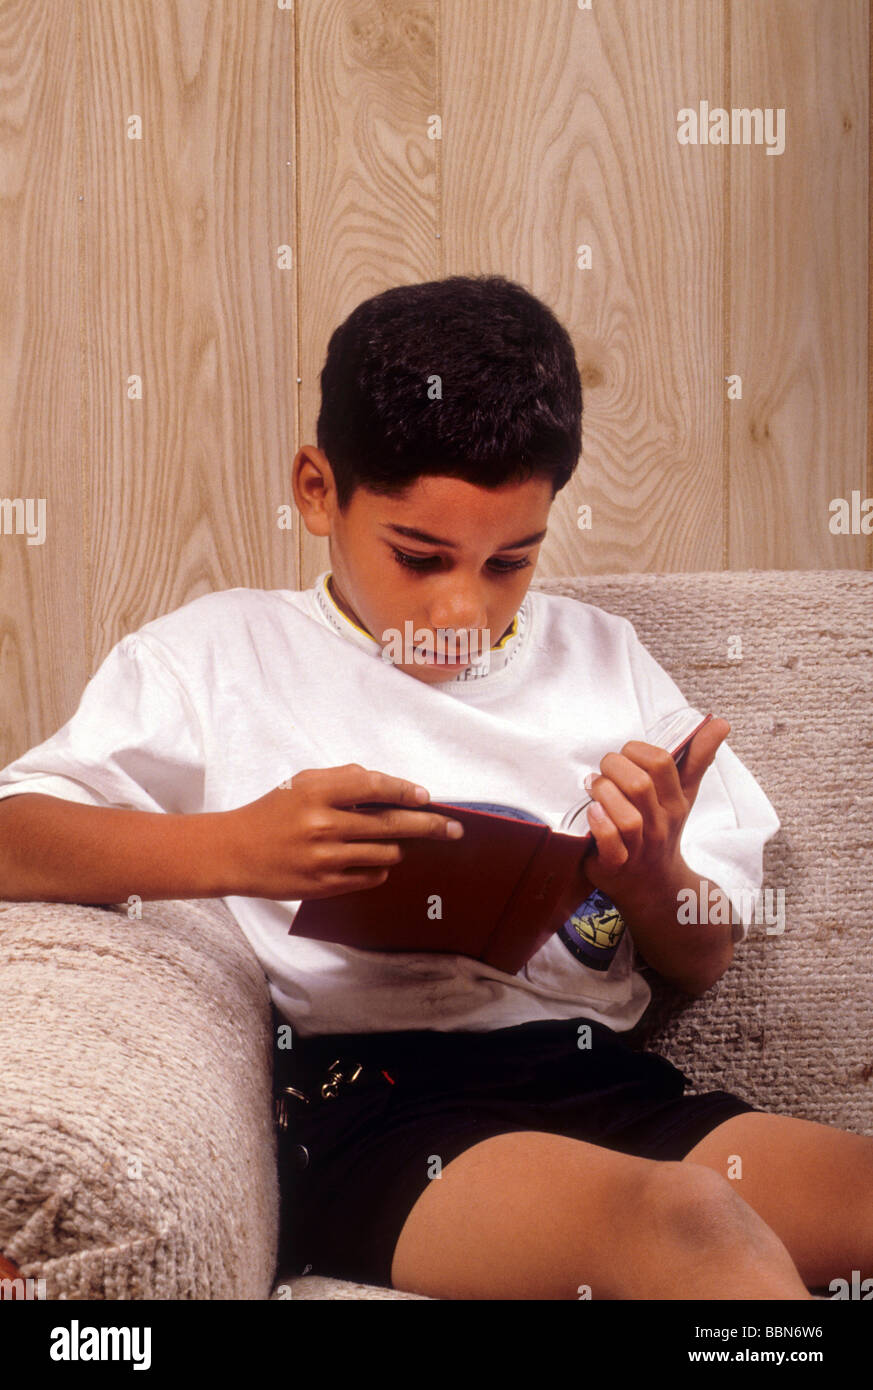 Attractive Hispanic Latin Boy Read Book Engross Concentrate Attention Deep Serious    Stock Image